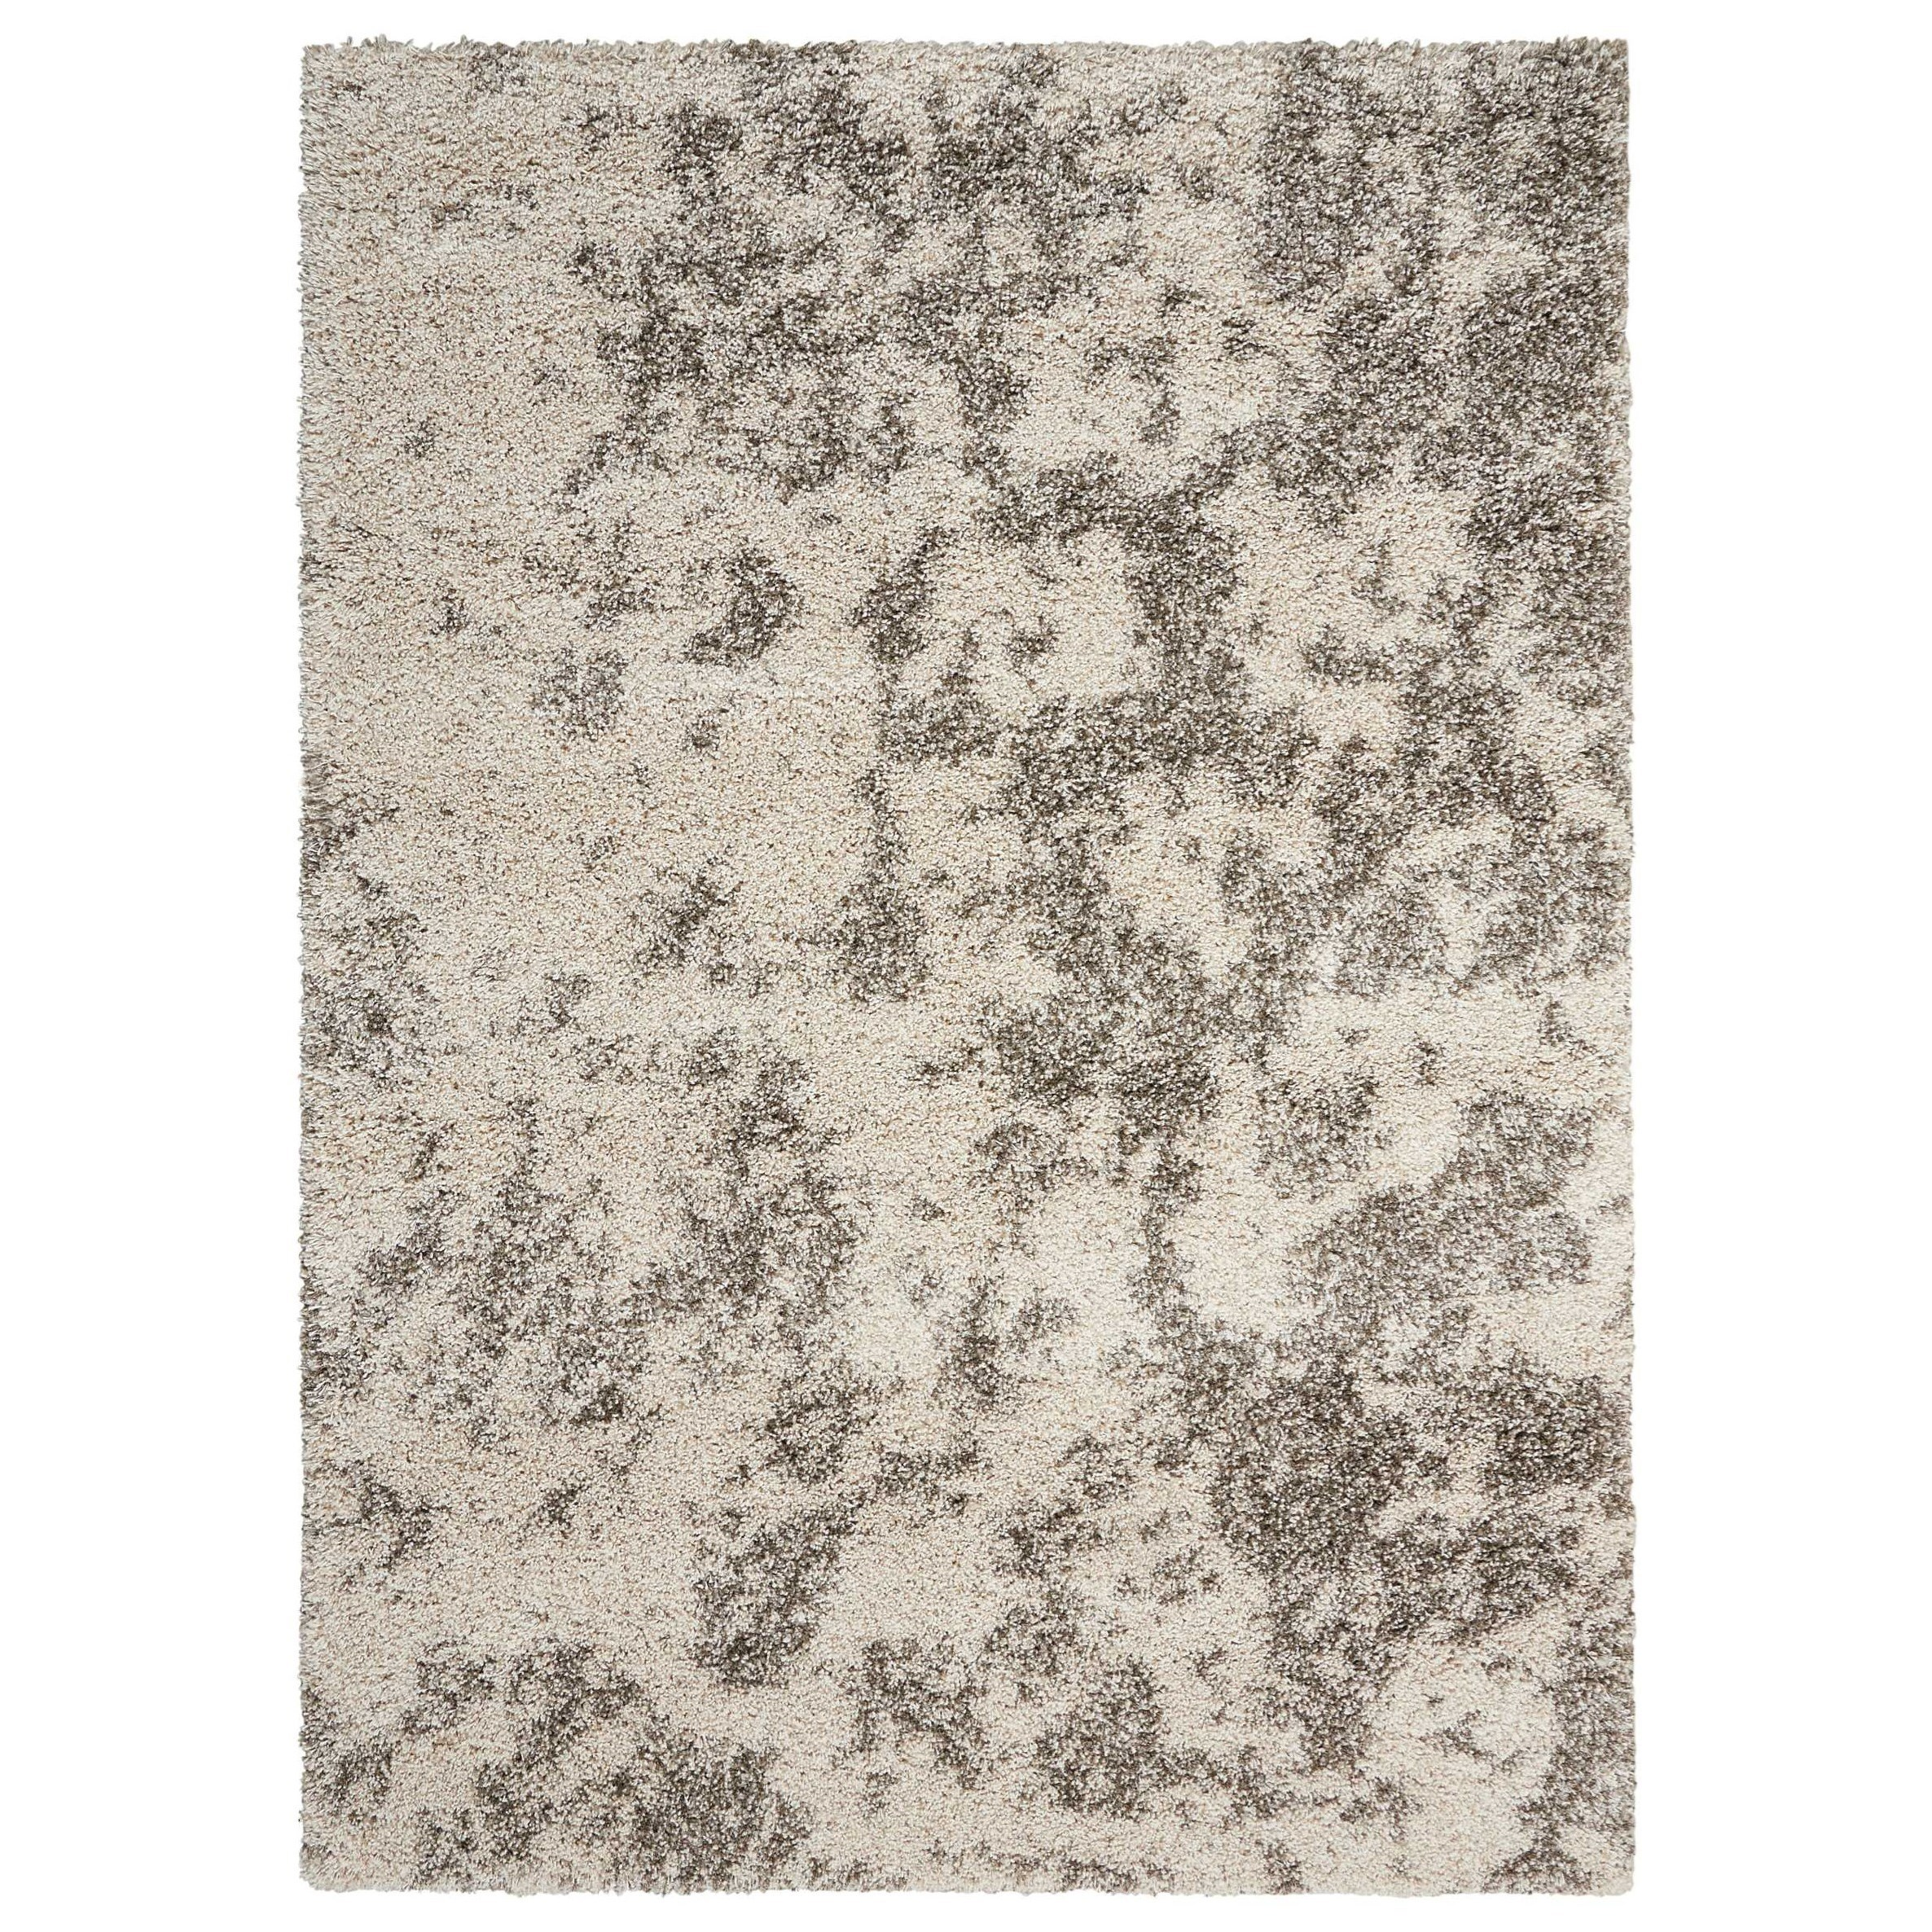 Amore Amore AMOR4 Green 8'x11'   Rug by Nourison at Home Collections Furniture